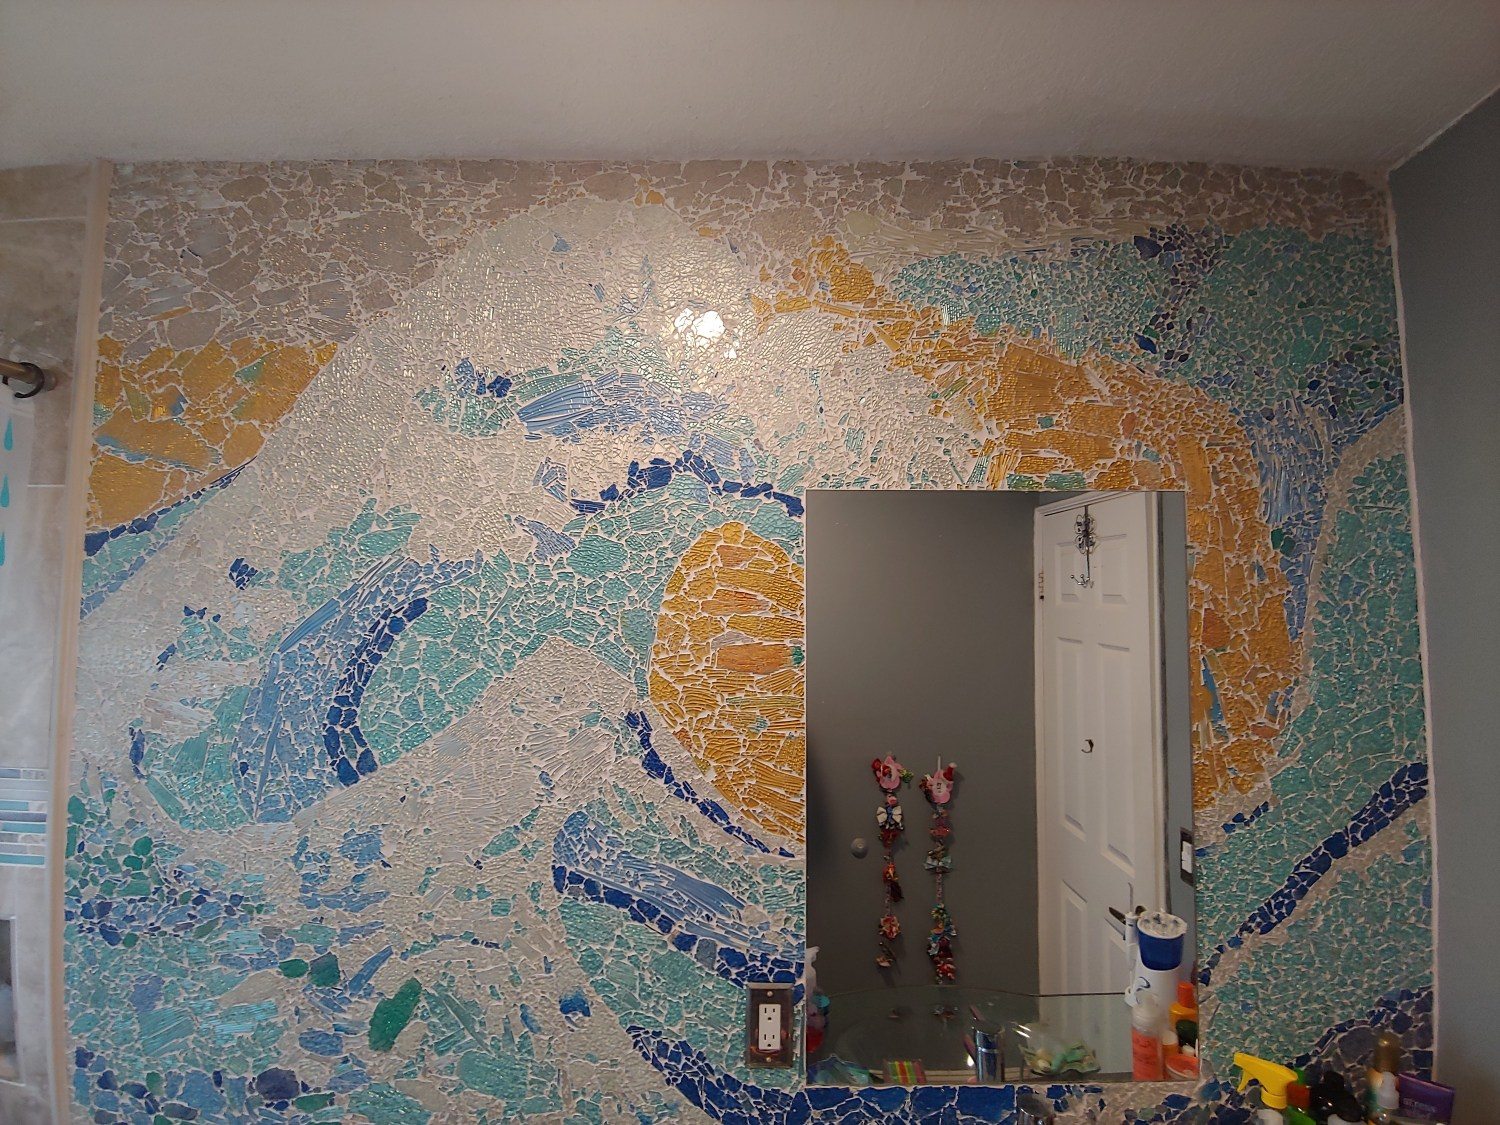 DIY Recycled Glass Mosaic